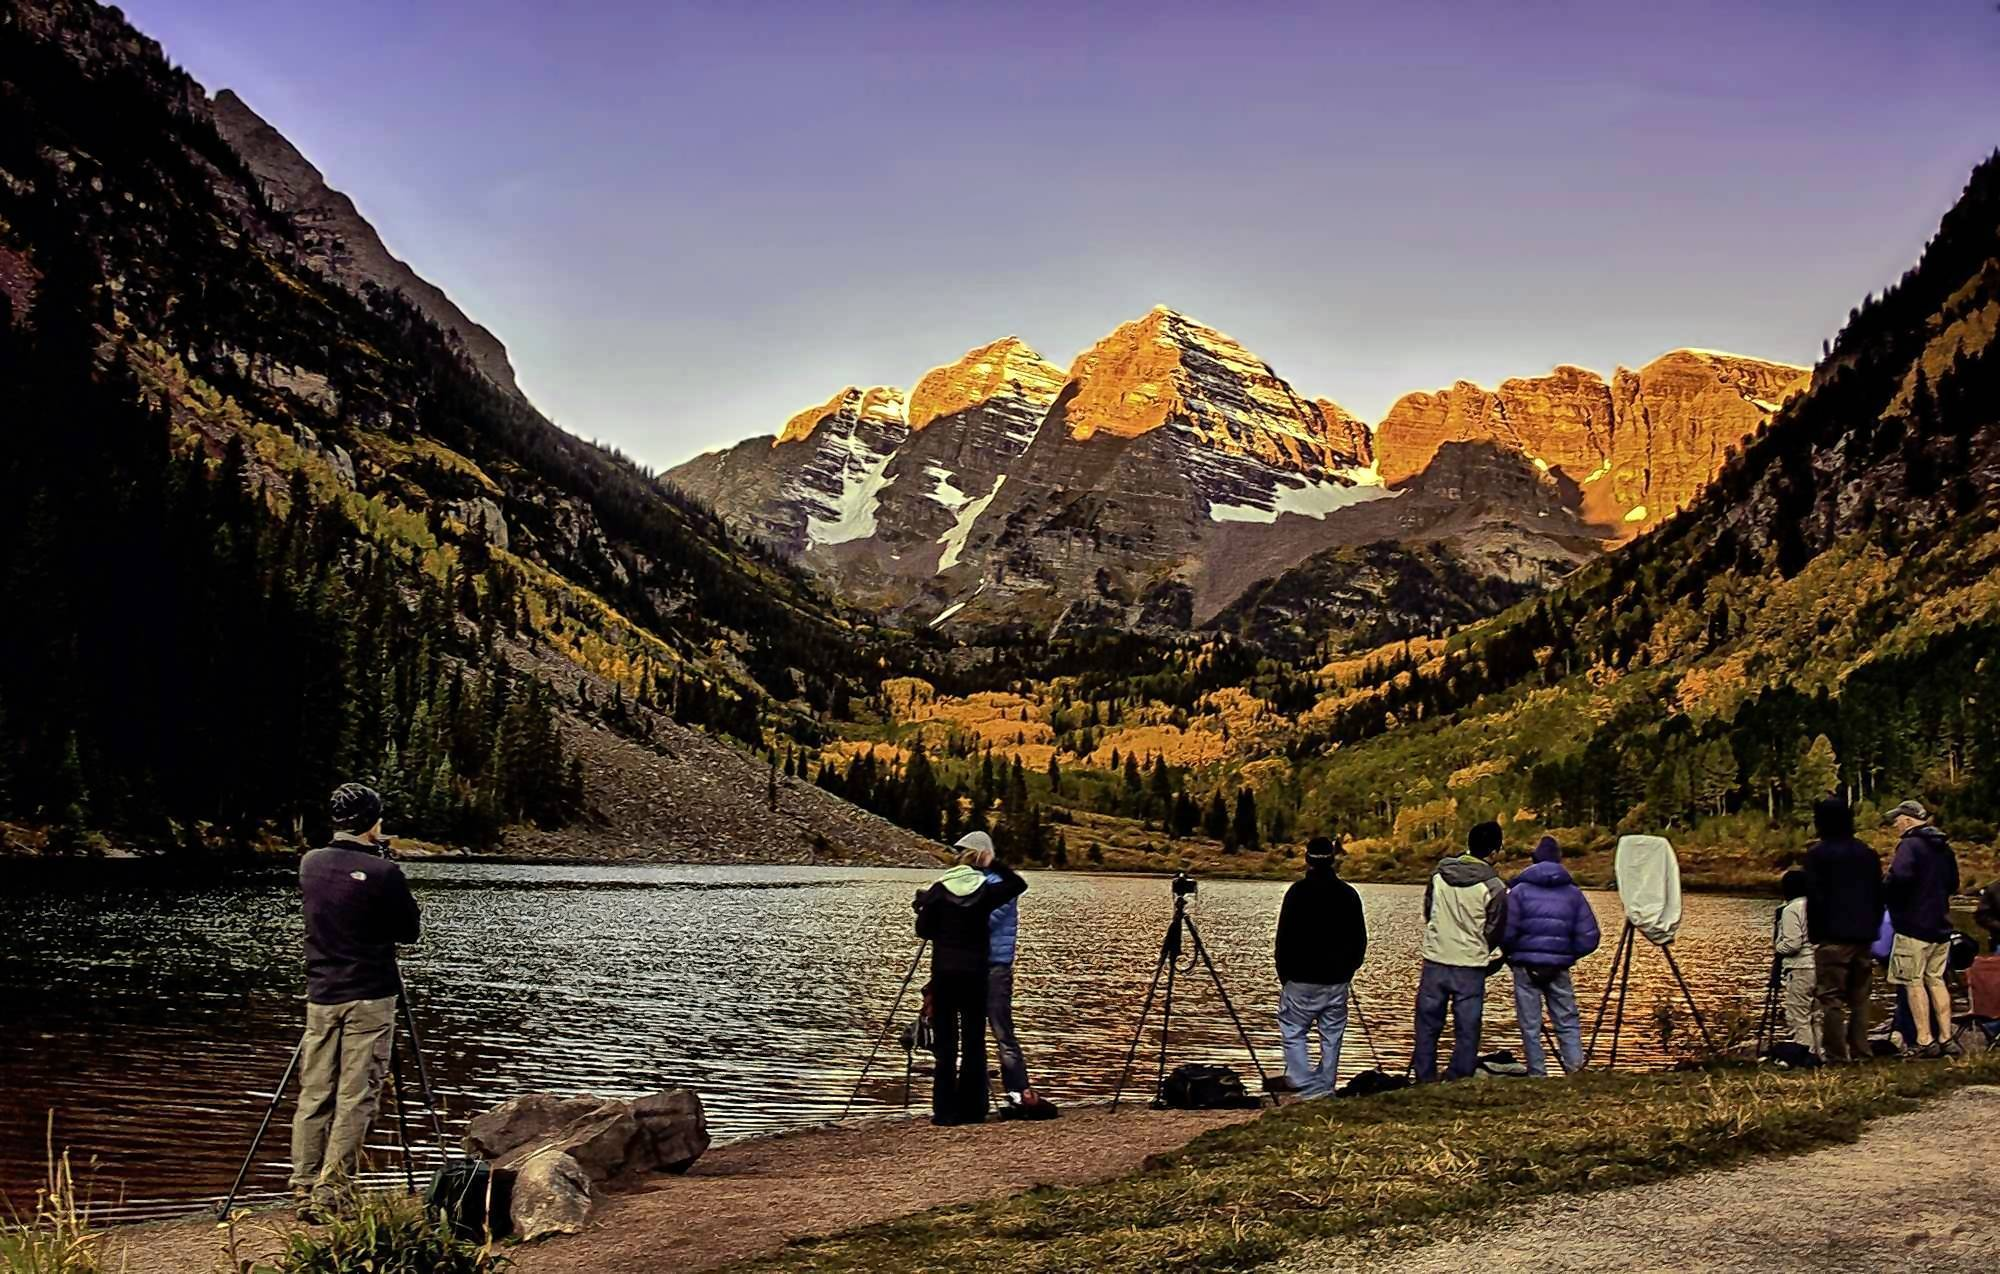 Photographers gather at sunrise at Maroon Lake, Colo., to shoot the Maroon Bells, framed by shadowed lateral ridges.